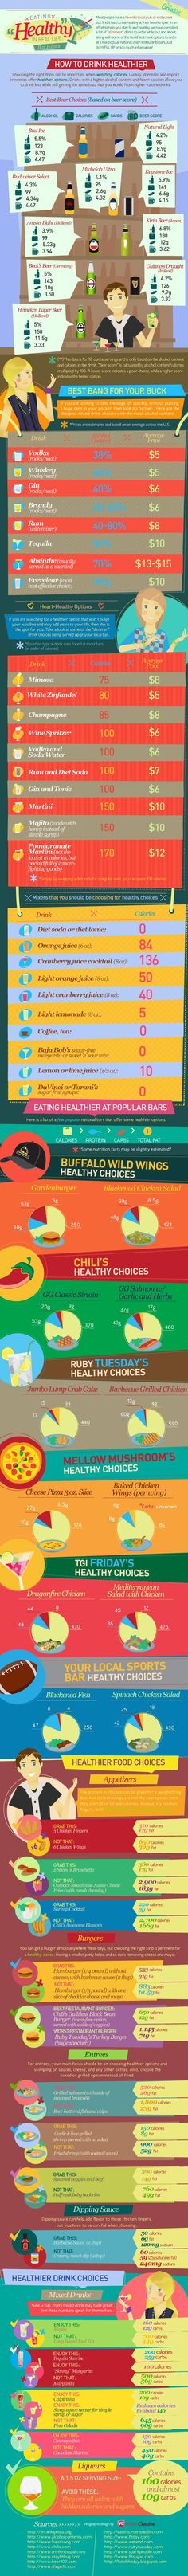 This post is about alternative healthy eating while you dine out.